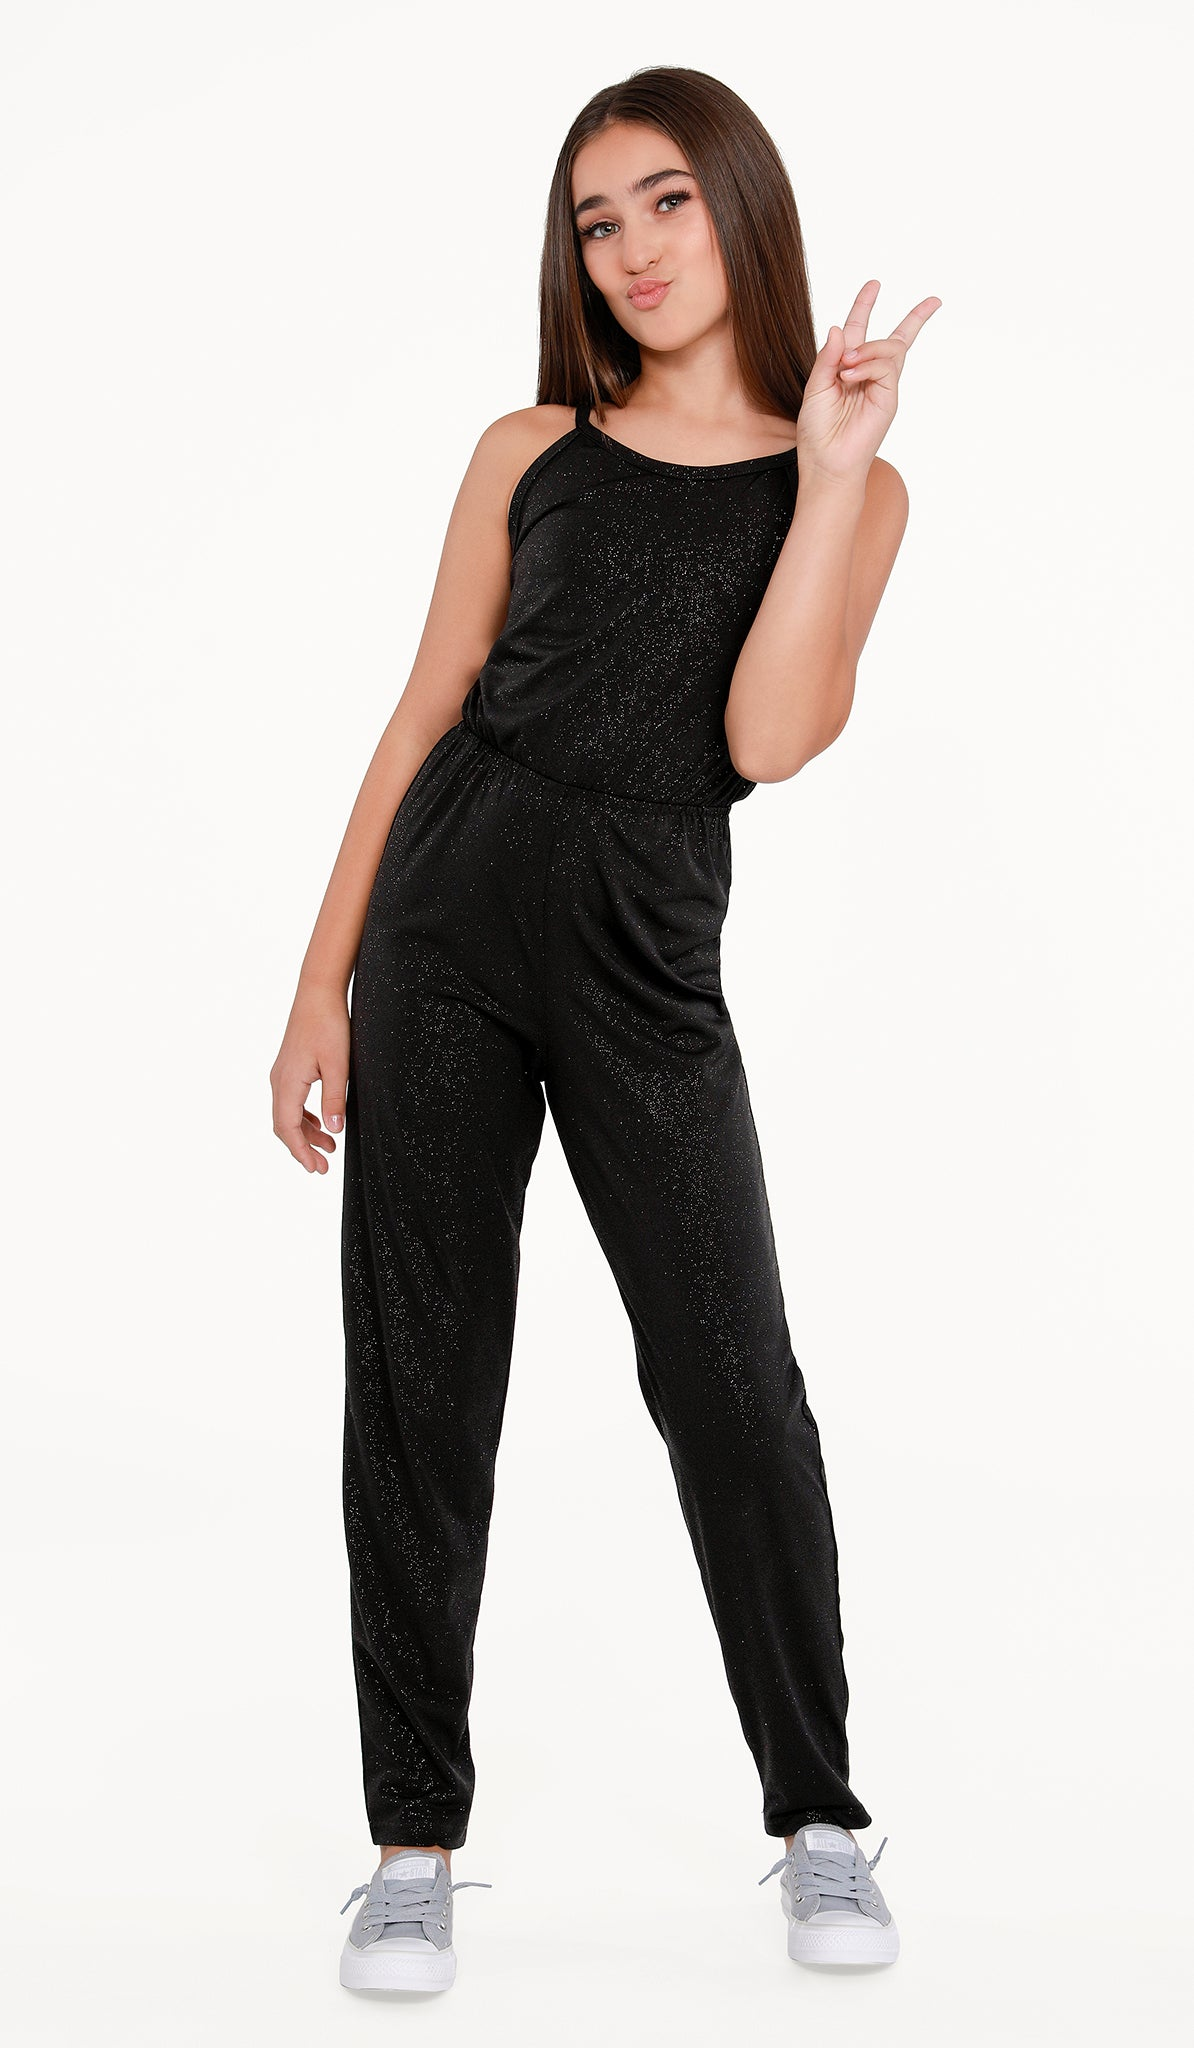 Sally Miller Eve Jumpsuit - Black sparkle stretch knit jumpsuit with elastic waist